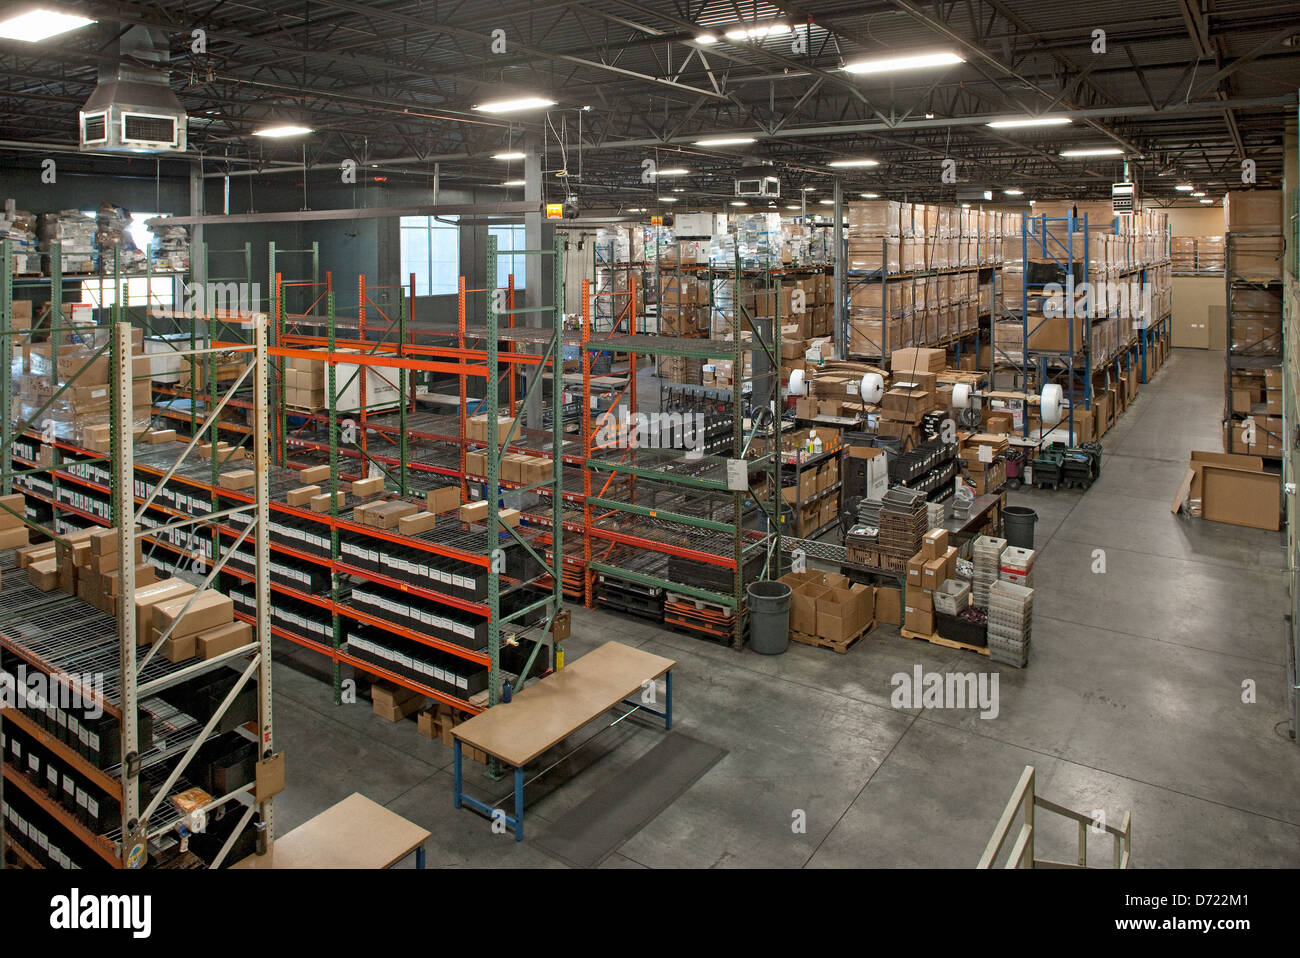 Overhead View Of Warehouse Interior For Recycling And Refurbishing  Electronics, Inkjet Cartridges, And Printer Toner.